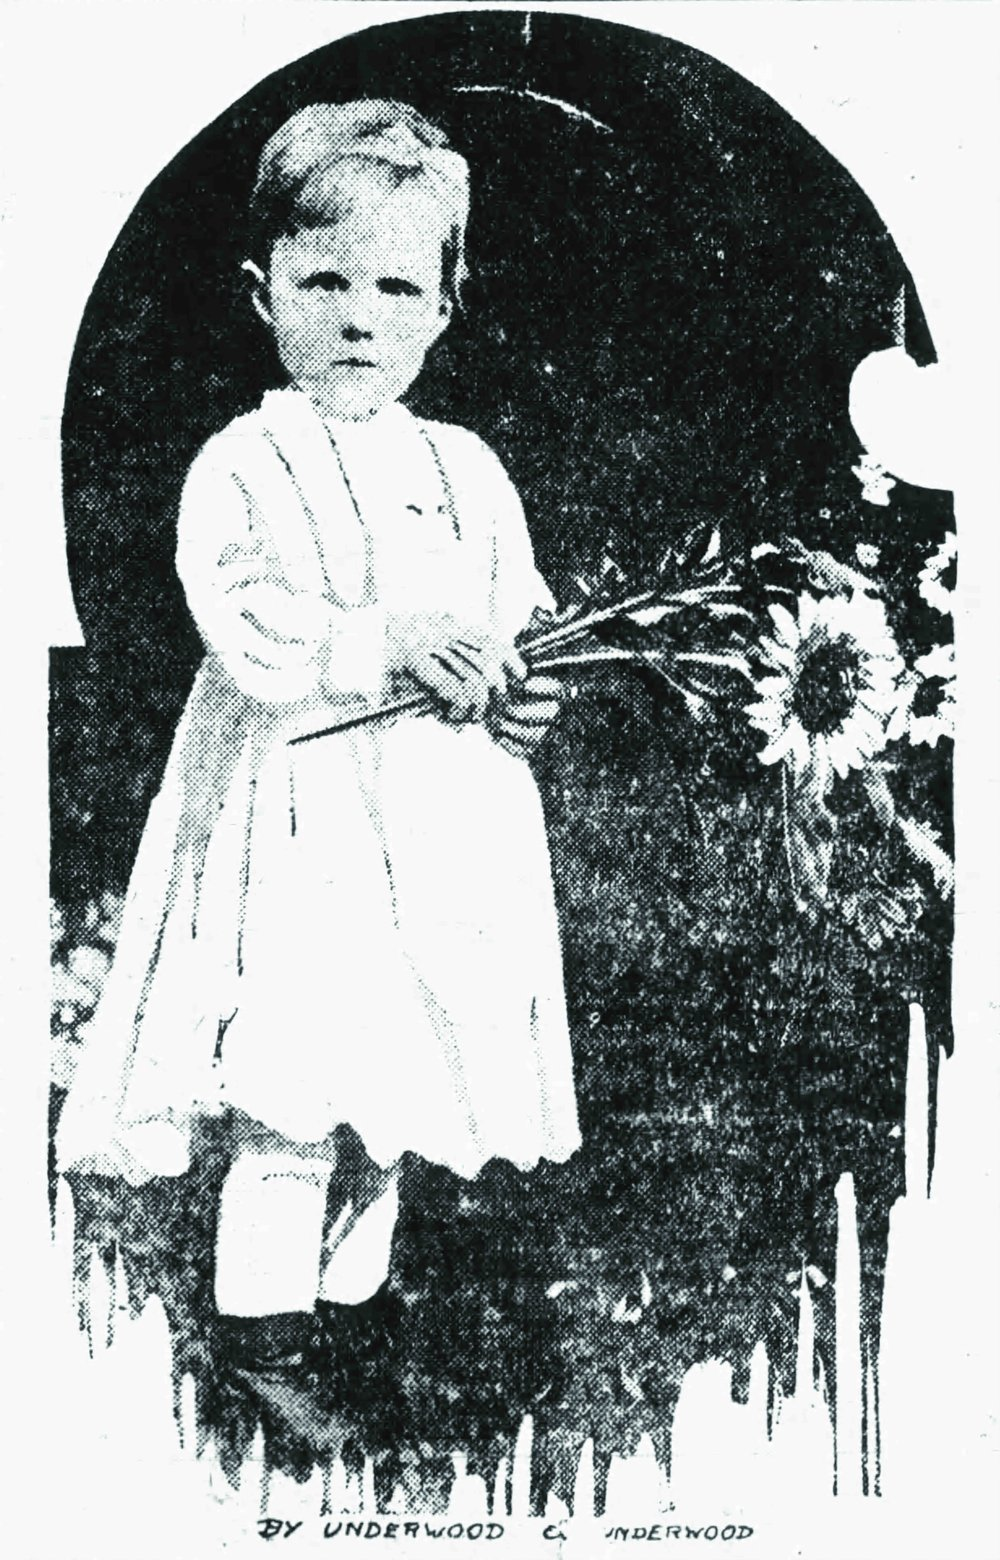 The queen of The Netherlands took this photo of Princess Juliana, 2 years, 8 months, in the palace garden; it appeared in the Arkansas Democrat on Jan. 11, 1912.